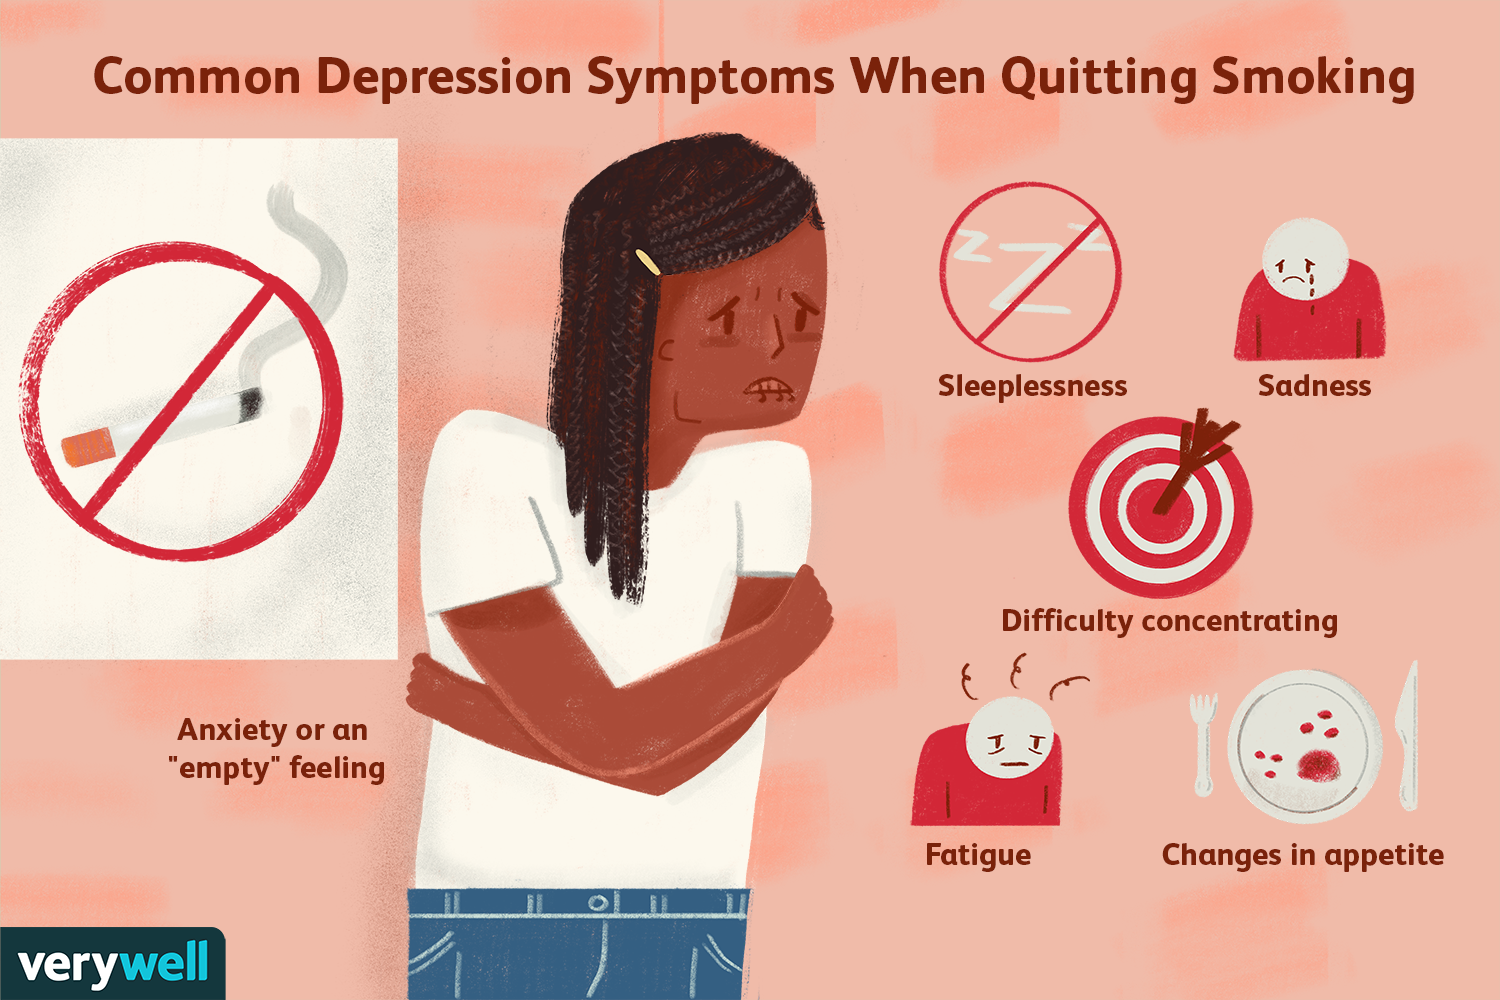 Depression Related to Quitting Smoking